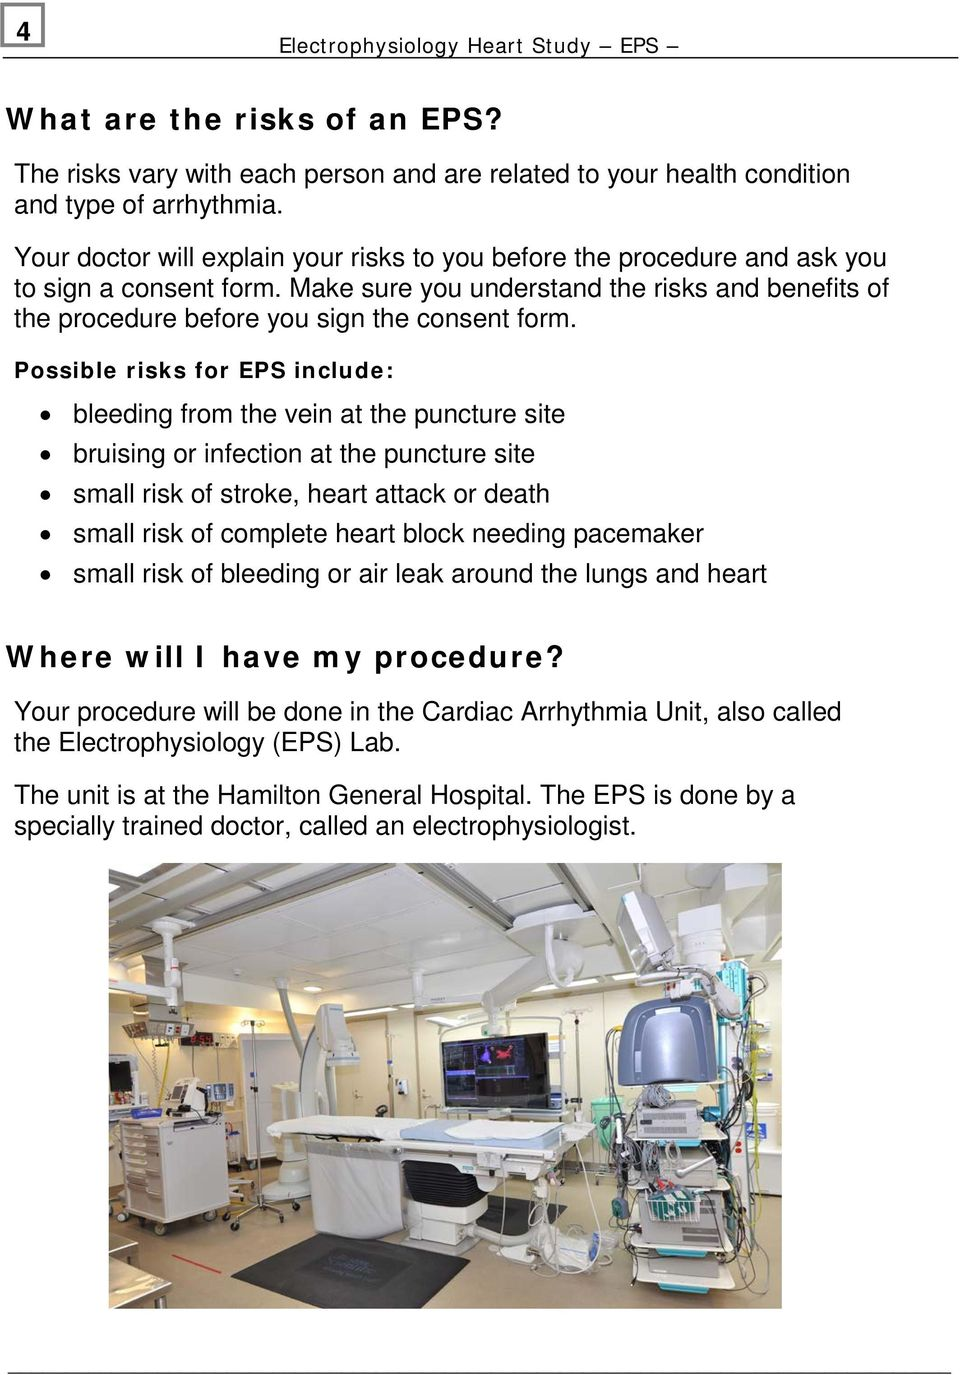 Possible risks for EPS include: bleeding from the vein at the puncture site bruising or infection at the puncture site small risk of stroke, heart attack or death small risk of complete heart block